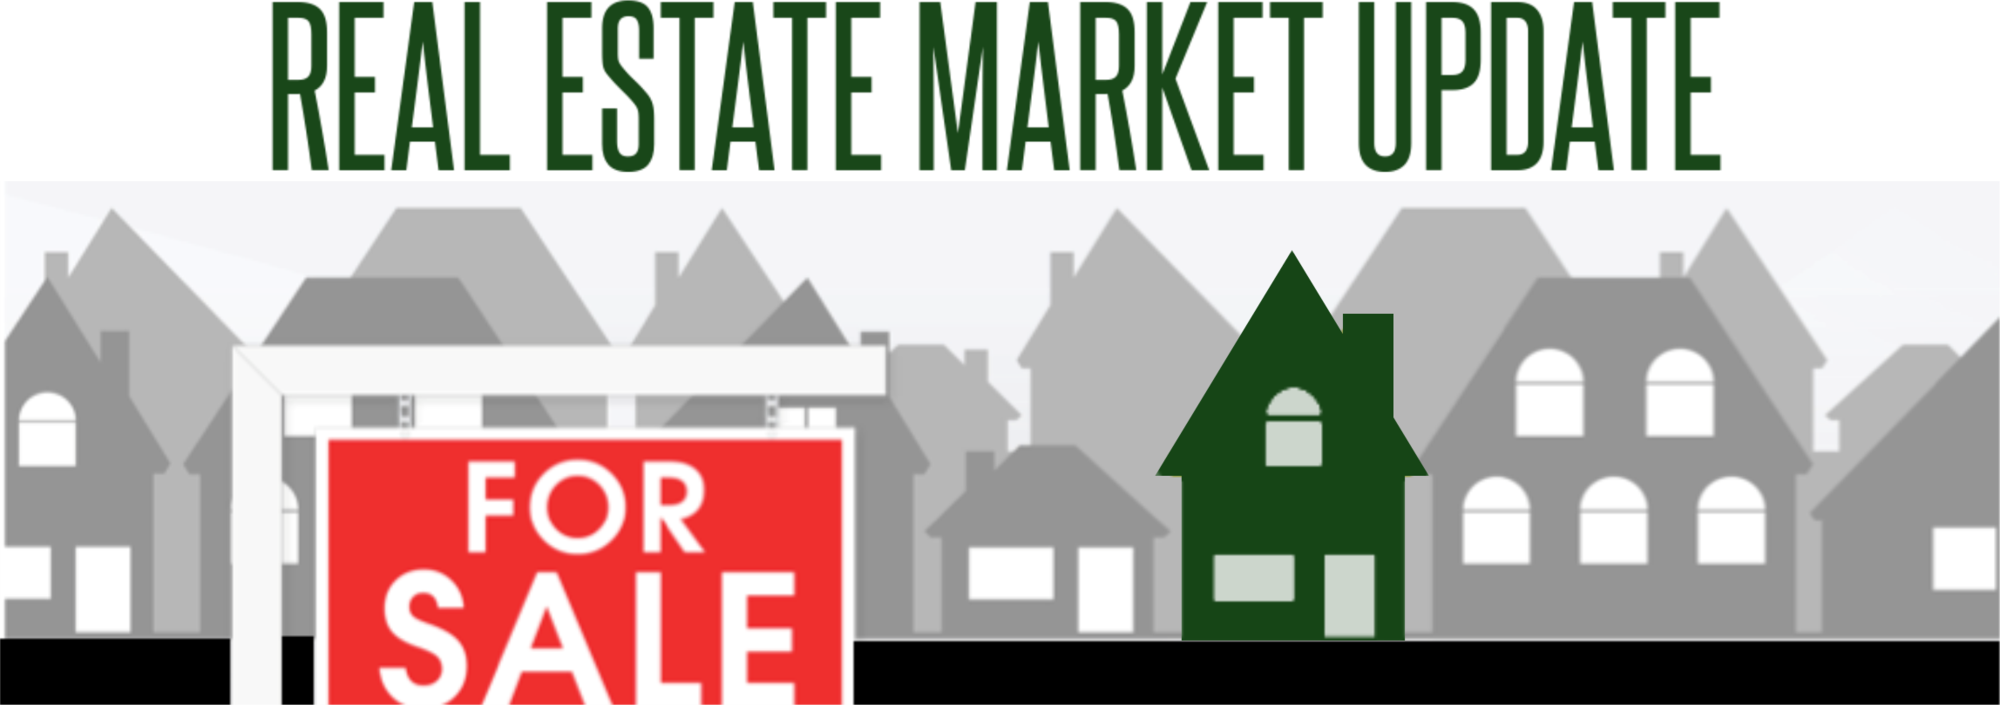 2018 Real Estate Market Trends - Seattle Area Prices